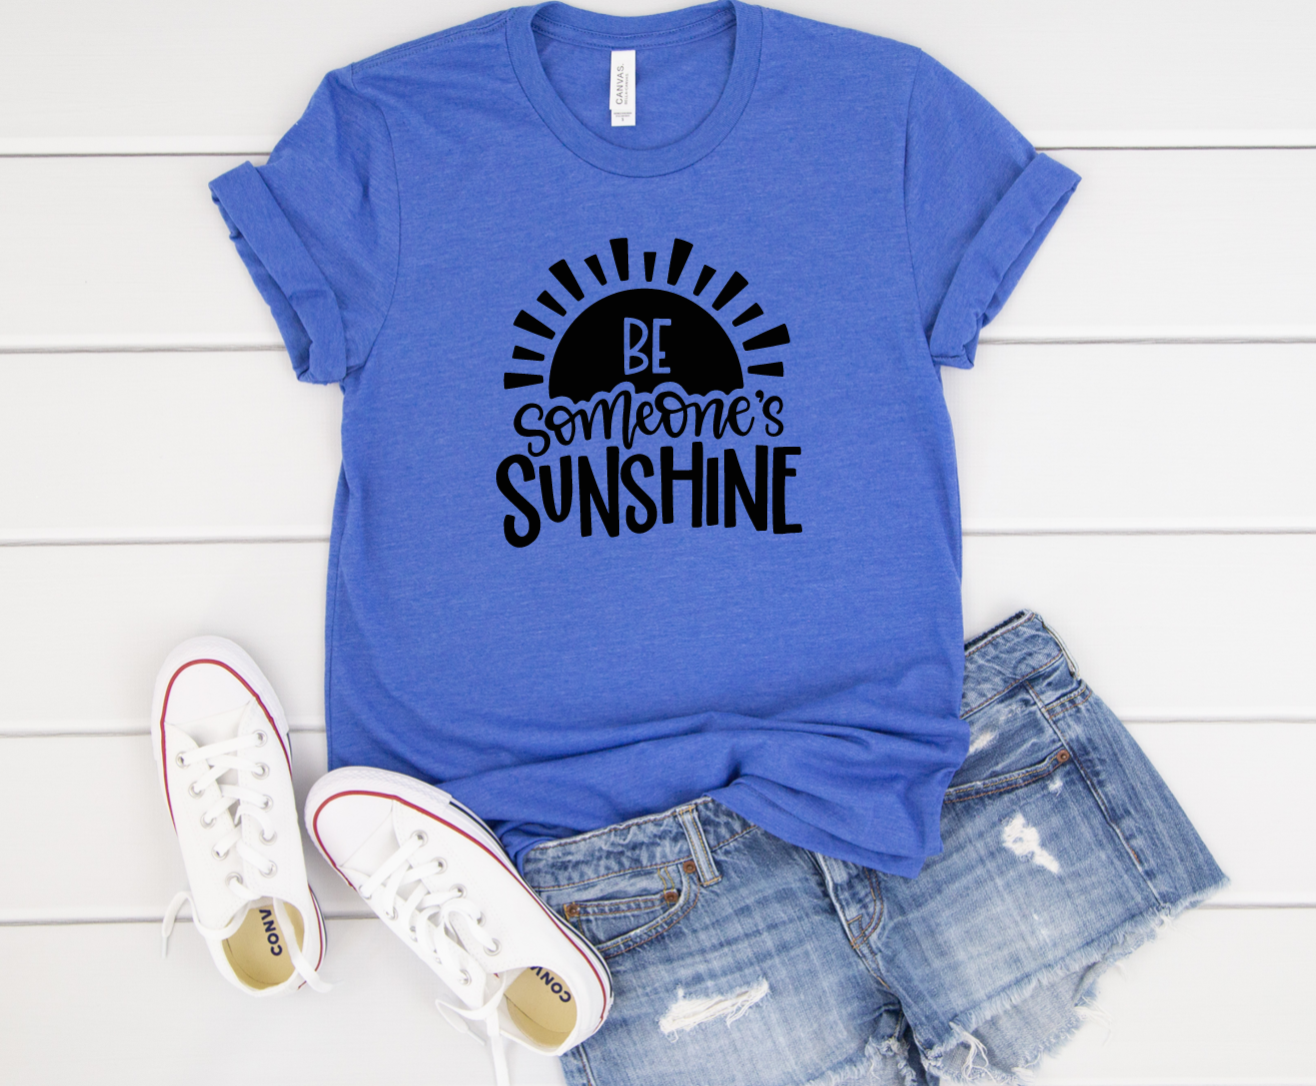 Be Someones Sunshine Shirt in Curvy Size